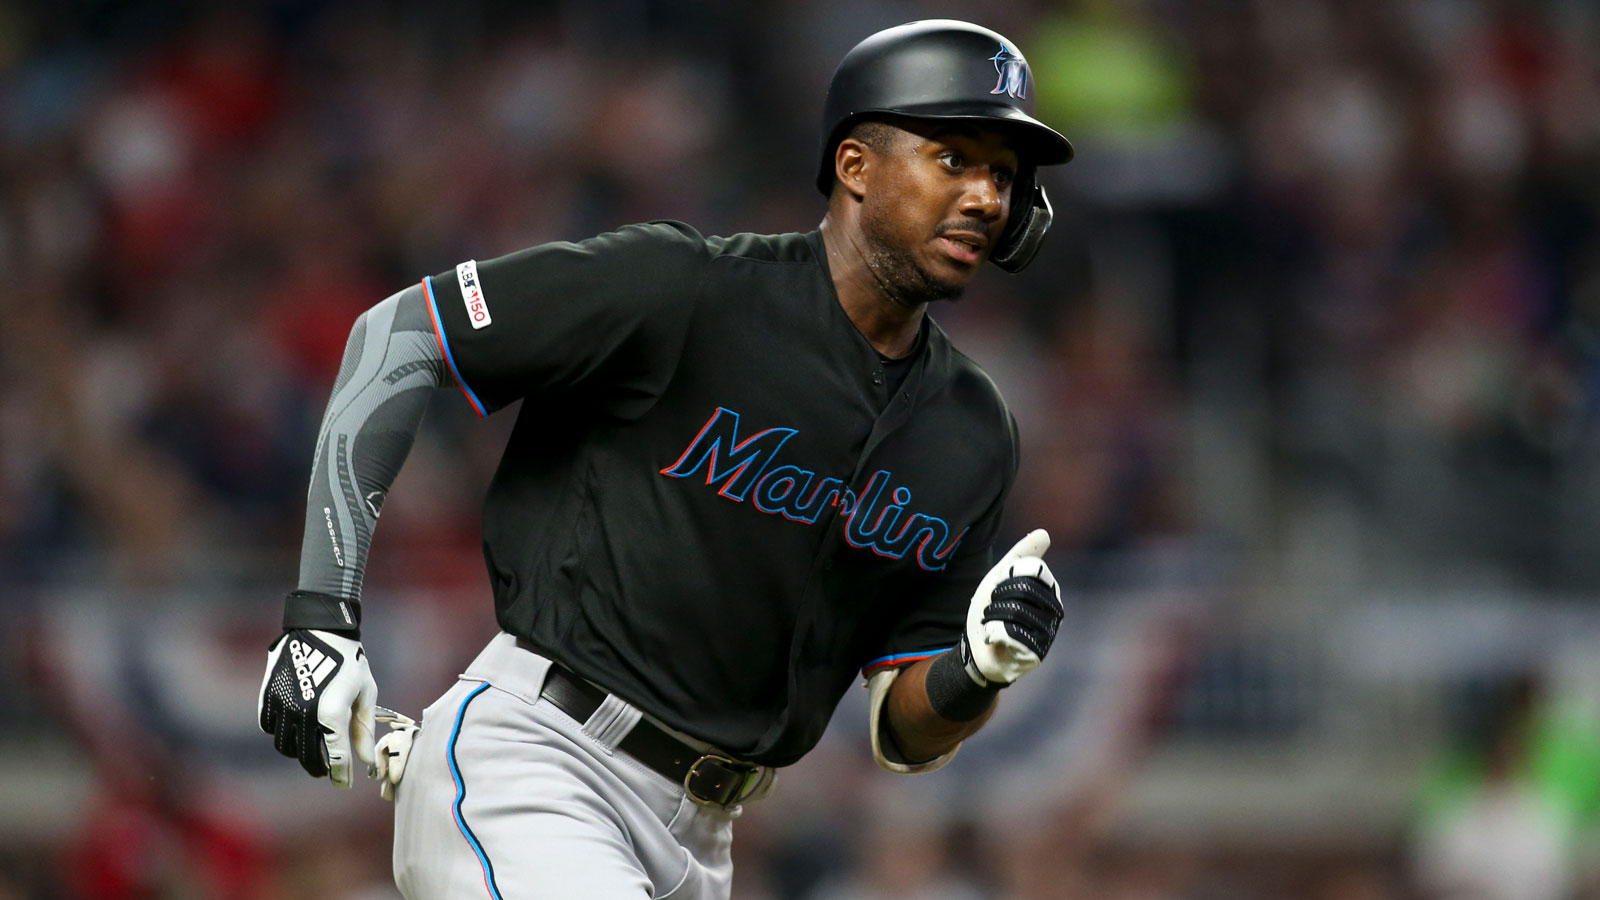 Marlins OF Lewis Brinson optioned to Triple-A New Orleans; Garrett Cooper reinstated but injured